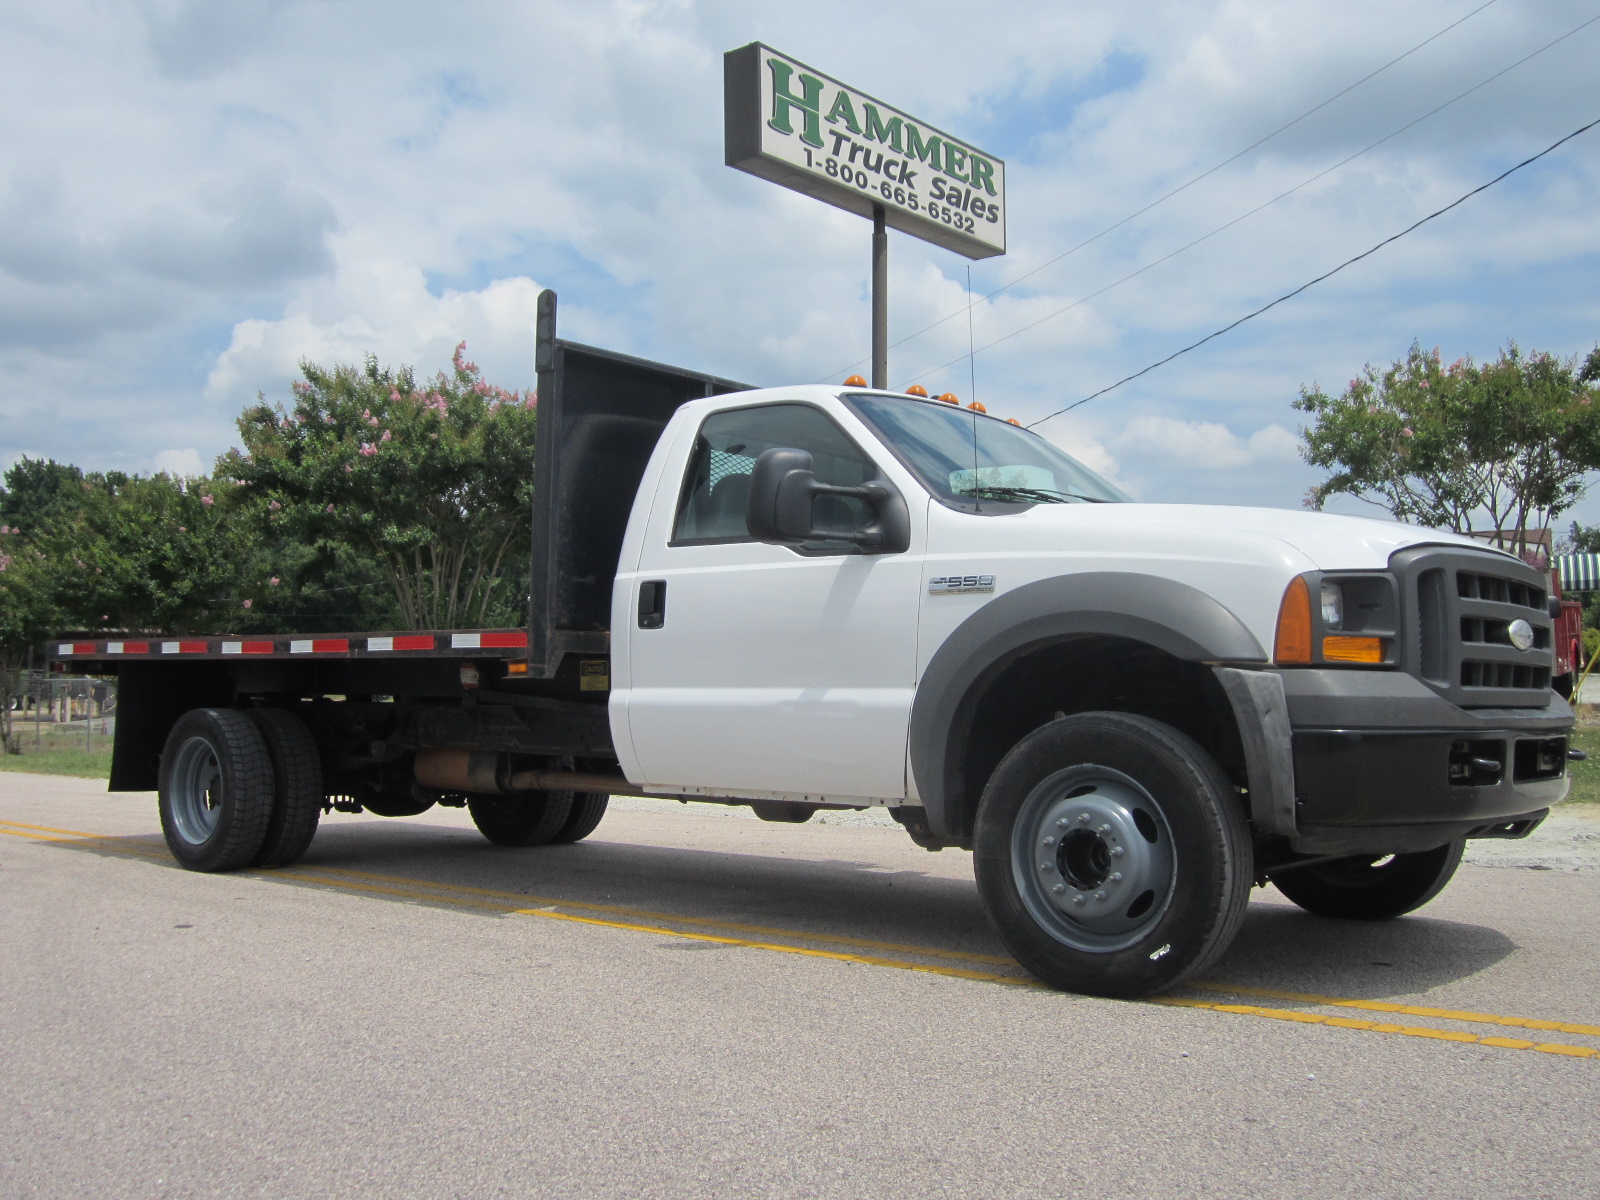 Ford flatbed photo - 6